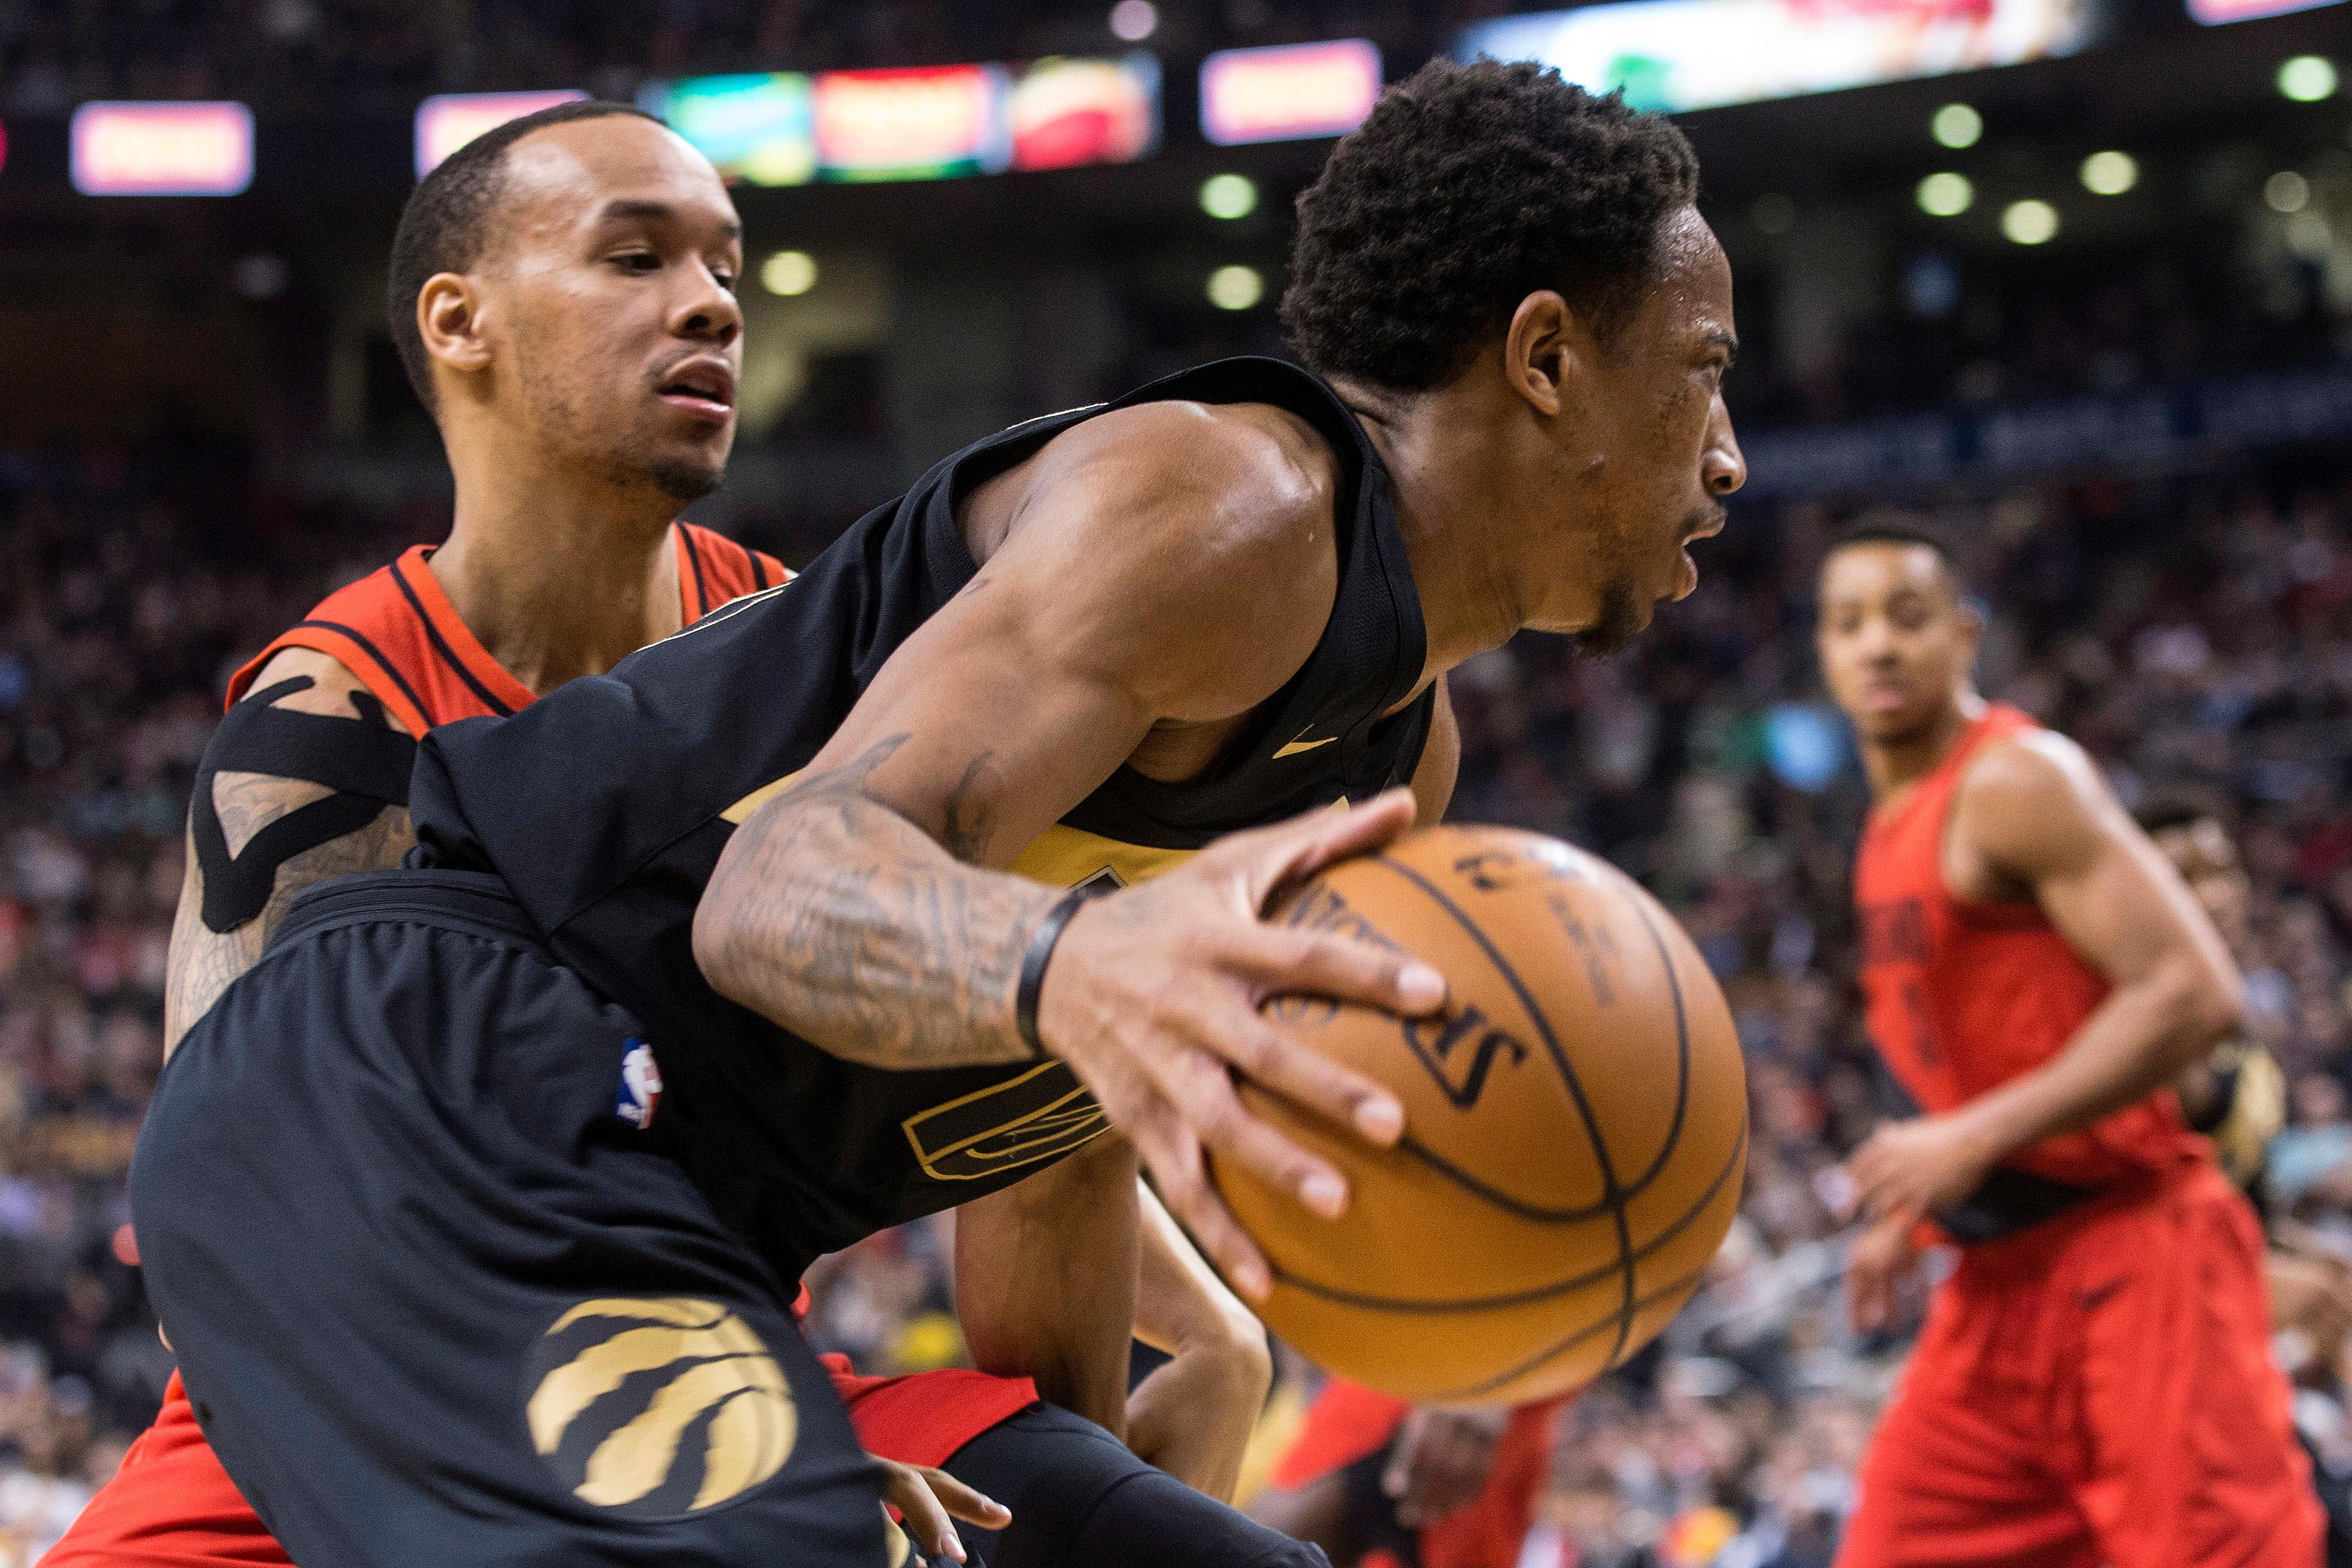 Toronto Raptors DeMar DeRozan drives past Portland Trail Blazers Shabazz Napier, left, during the second half of an NBA basketball game Friday, Feb. 2, 2018, in Toronto. (Chris Young/The Canadian Press via AP)